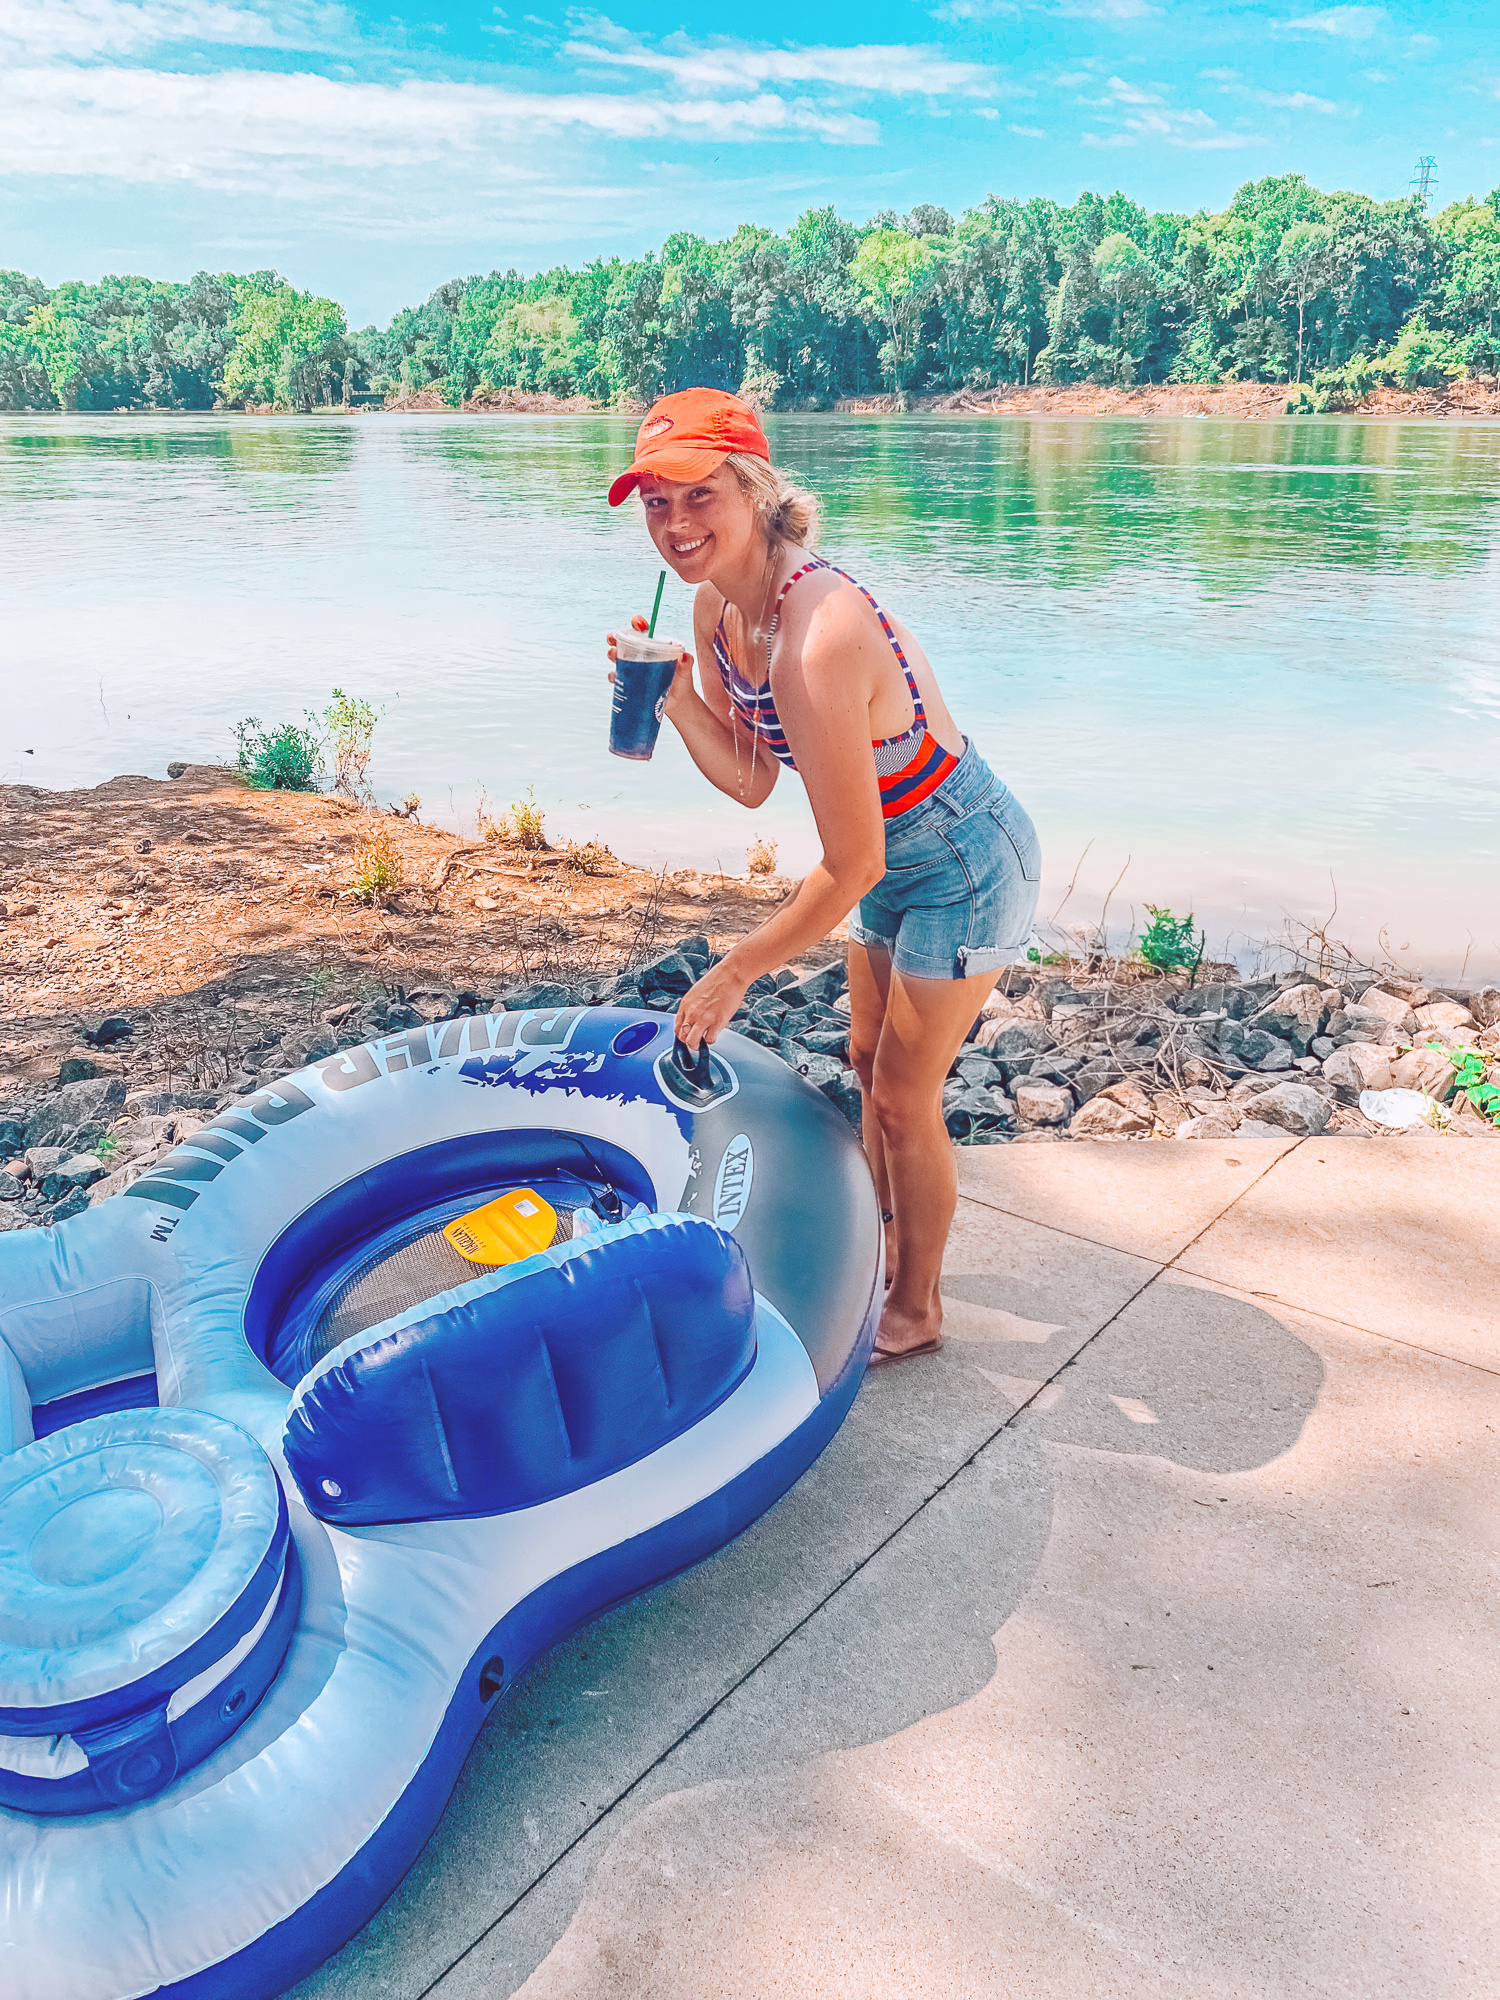 catawba river, river floating, summer in the south, river float, tubes, tubing, paddles, south carolina, southerners, fort mills sc, rock hill sc, riverwalk, fun summer things to do, what to do in Charlotte, simply taralynn